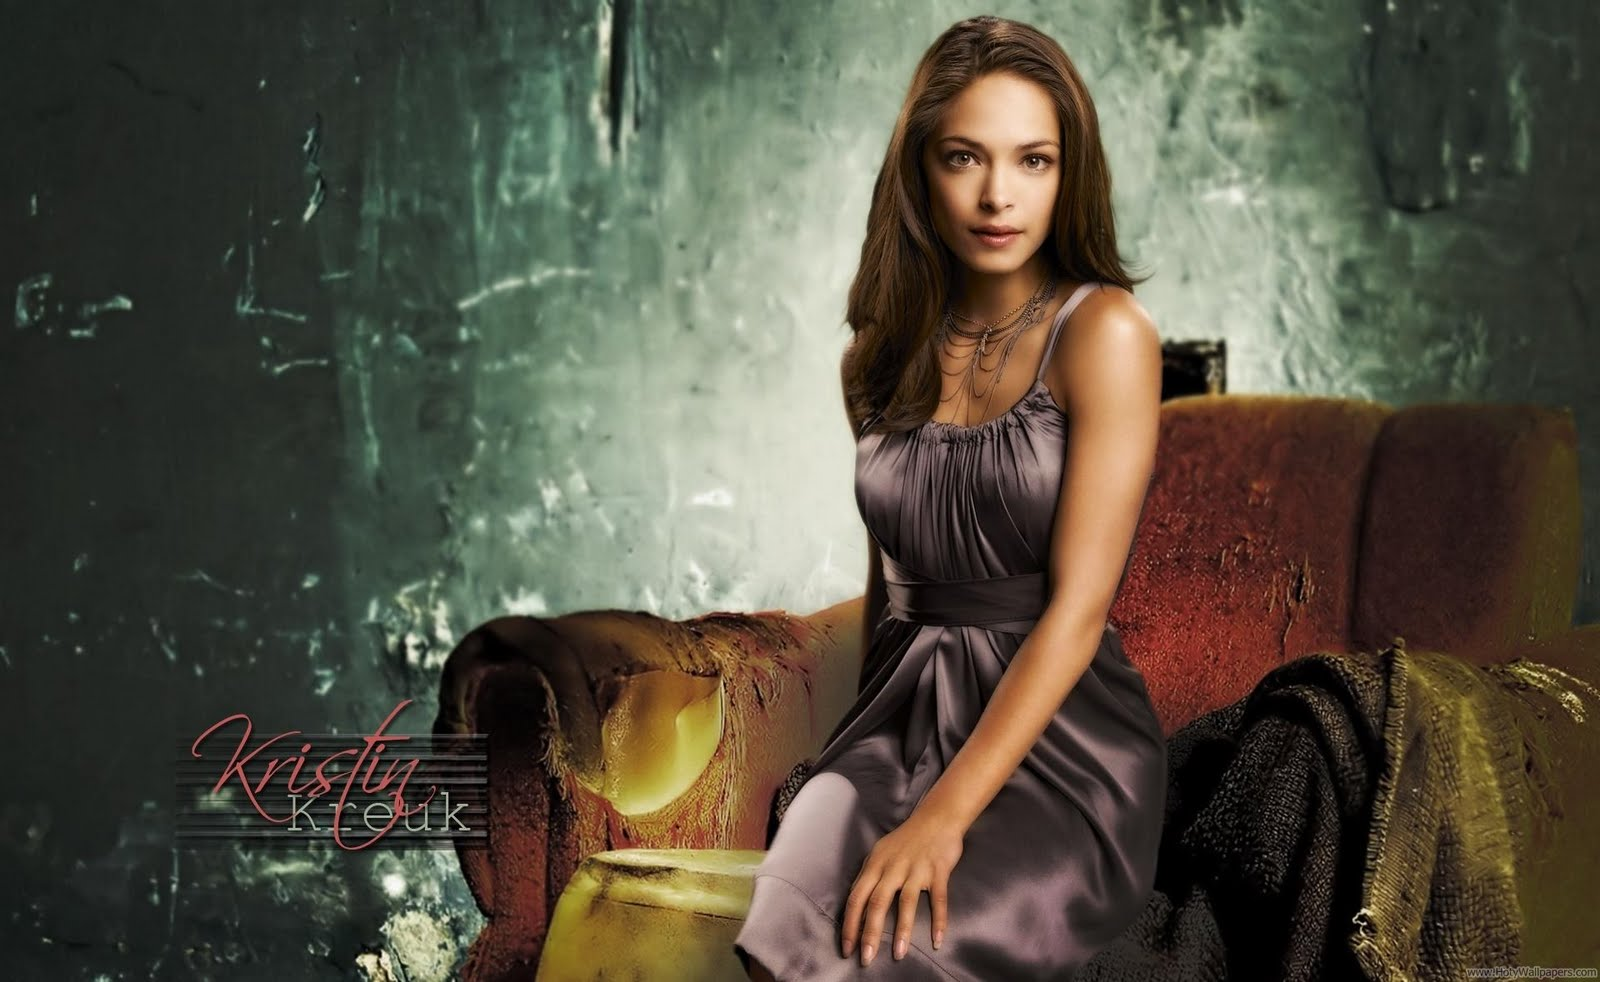 Booty Me Now Kristin Kreuk Actress Wallpapers